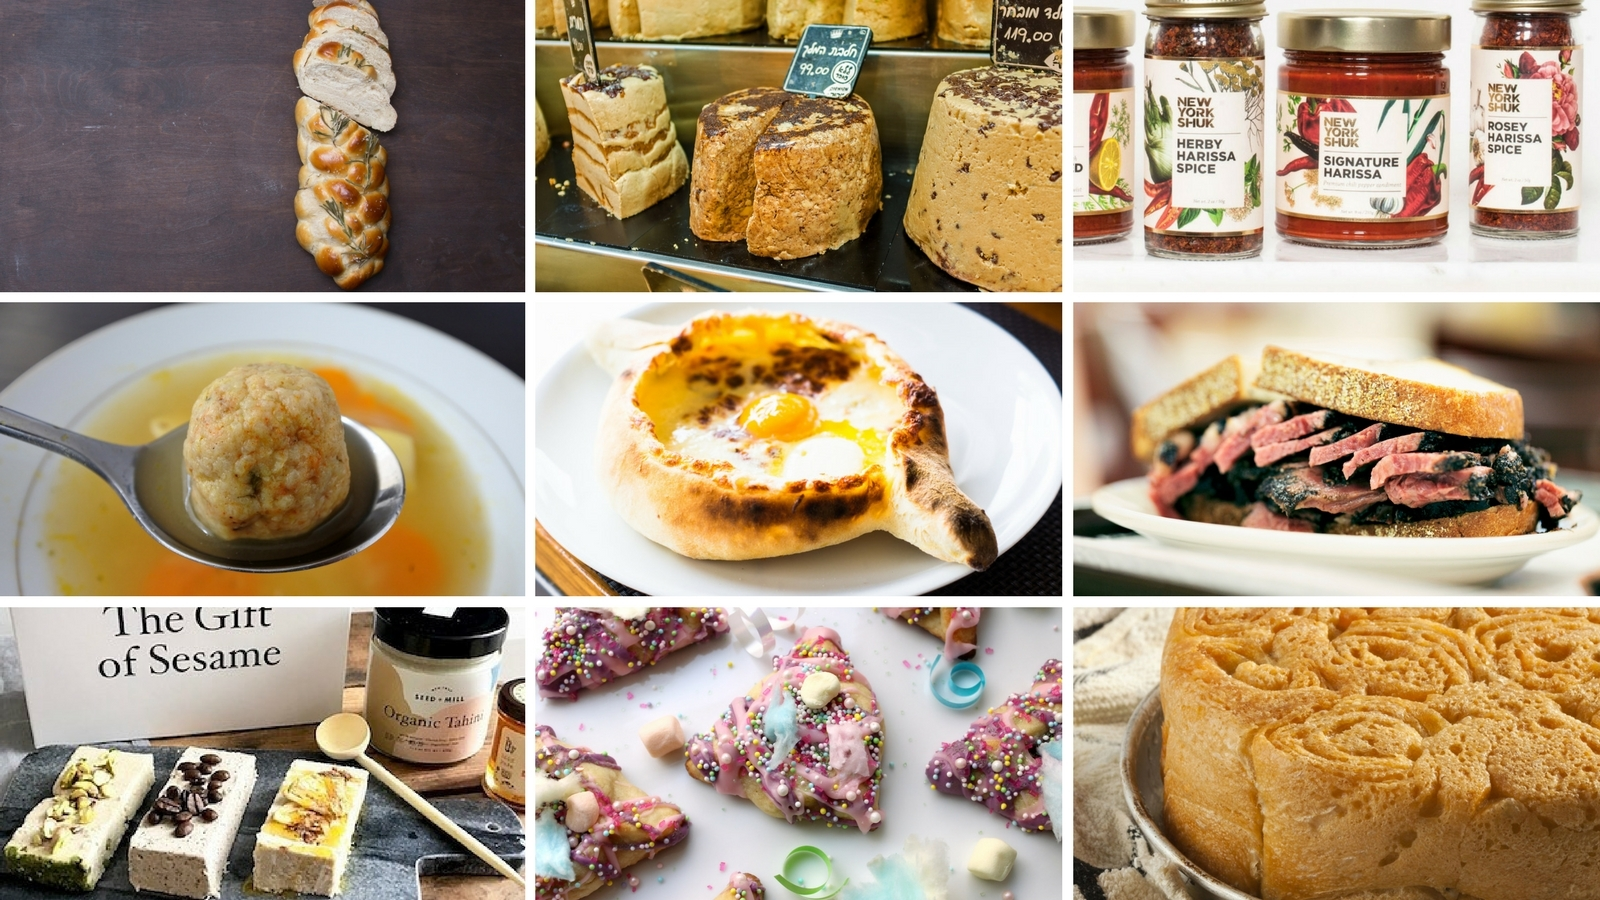 The 10 Most Drool Worthy Jewish Foods Of 2017